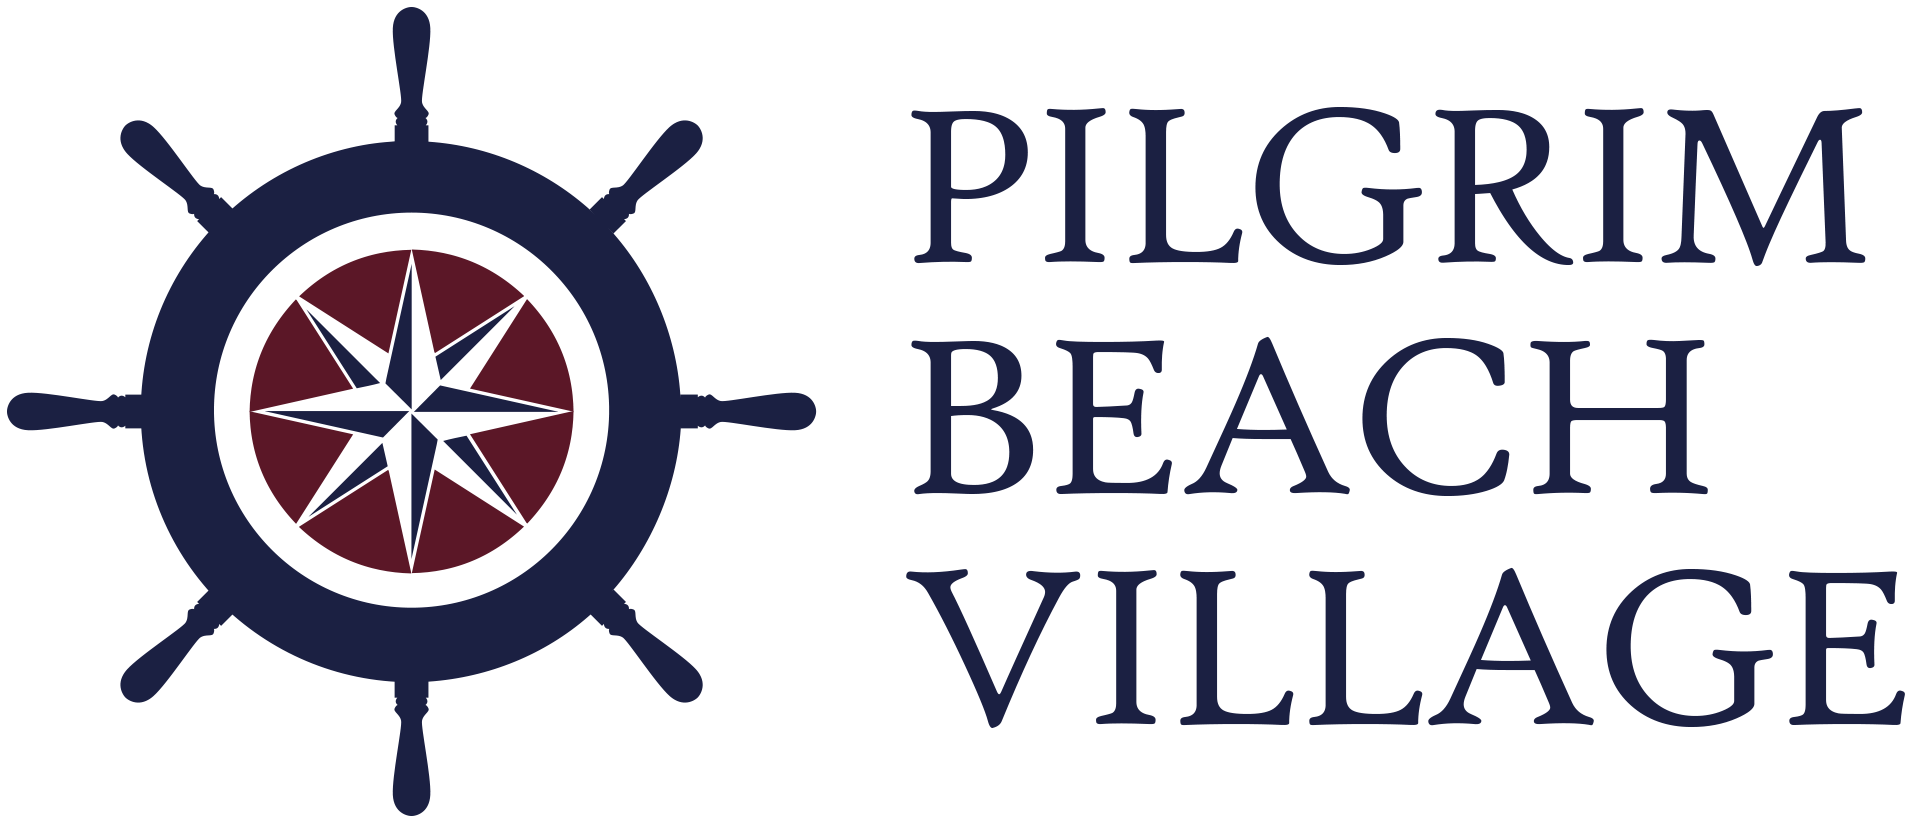 Home pilgrim beach village. Pilgrims clipart plymouth colony